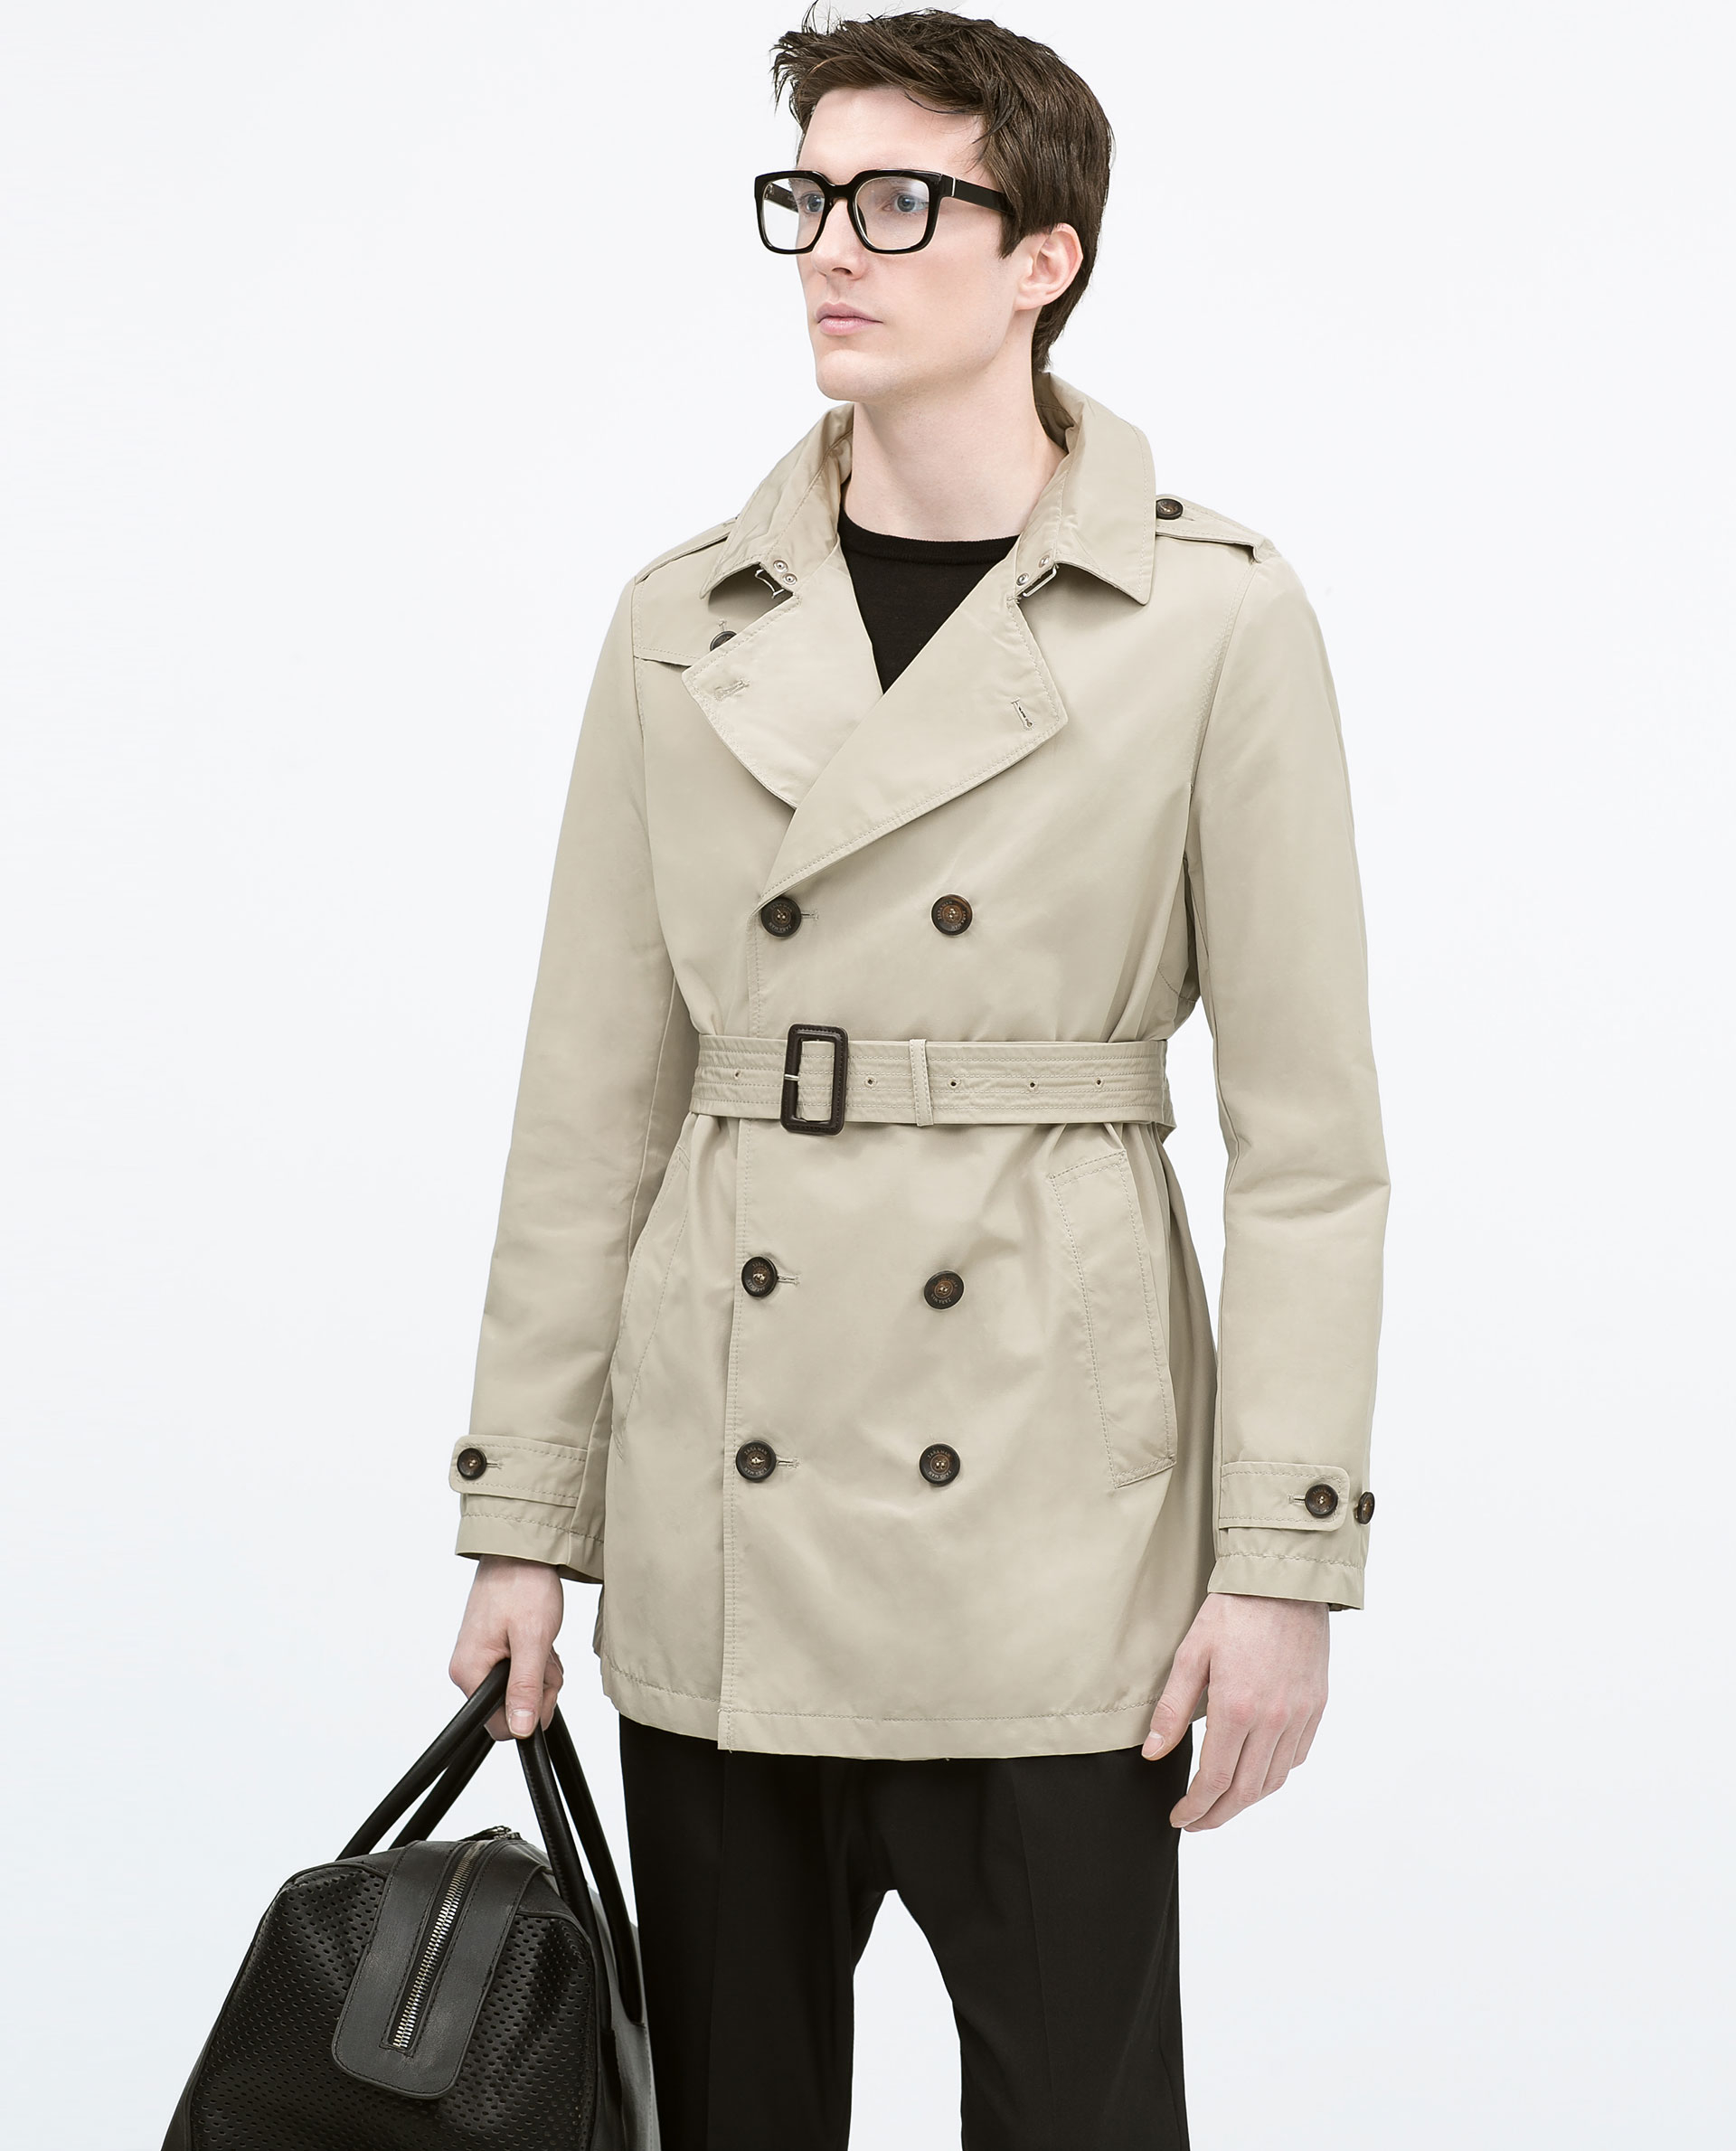 6 Men's Trench Coats To Consider This Autumn recommend